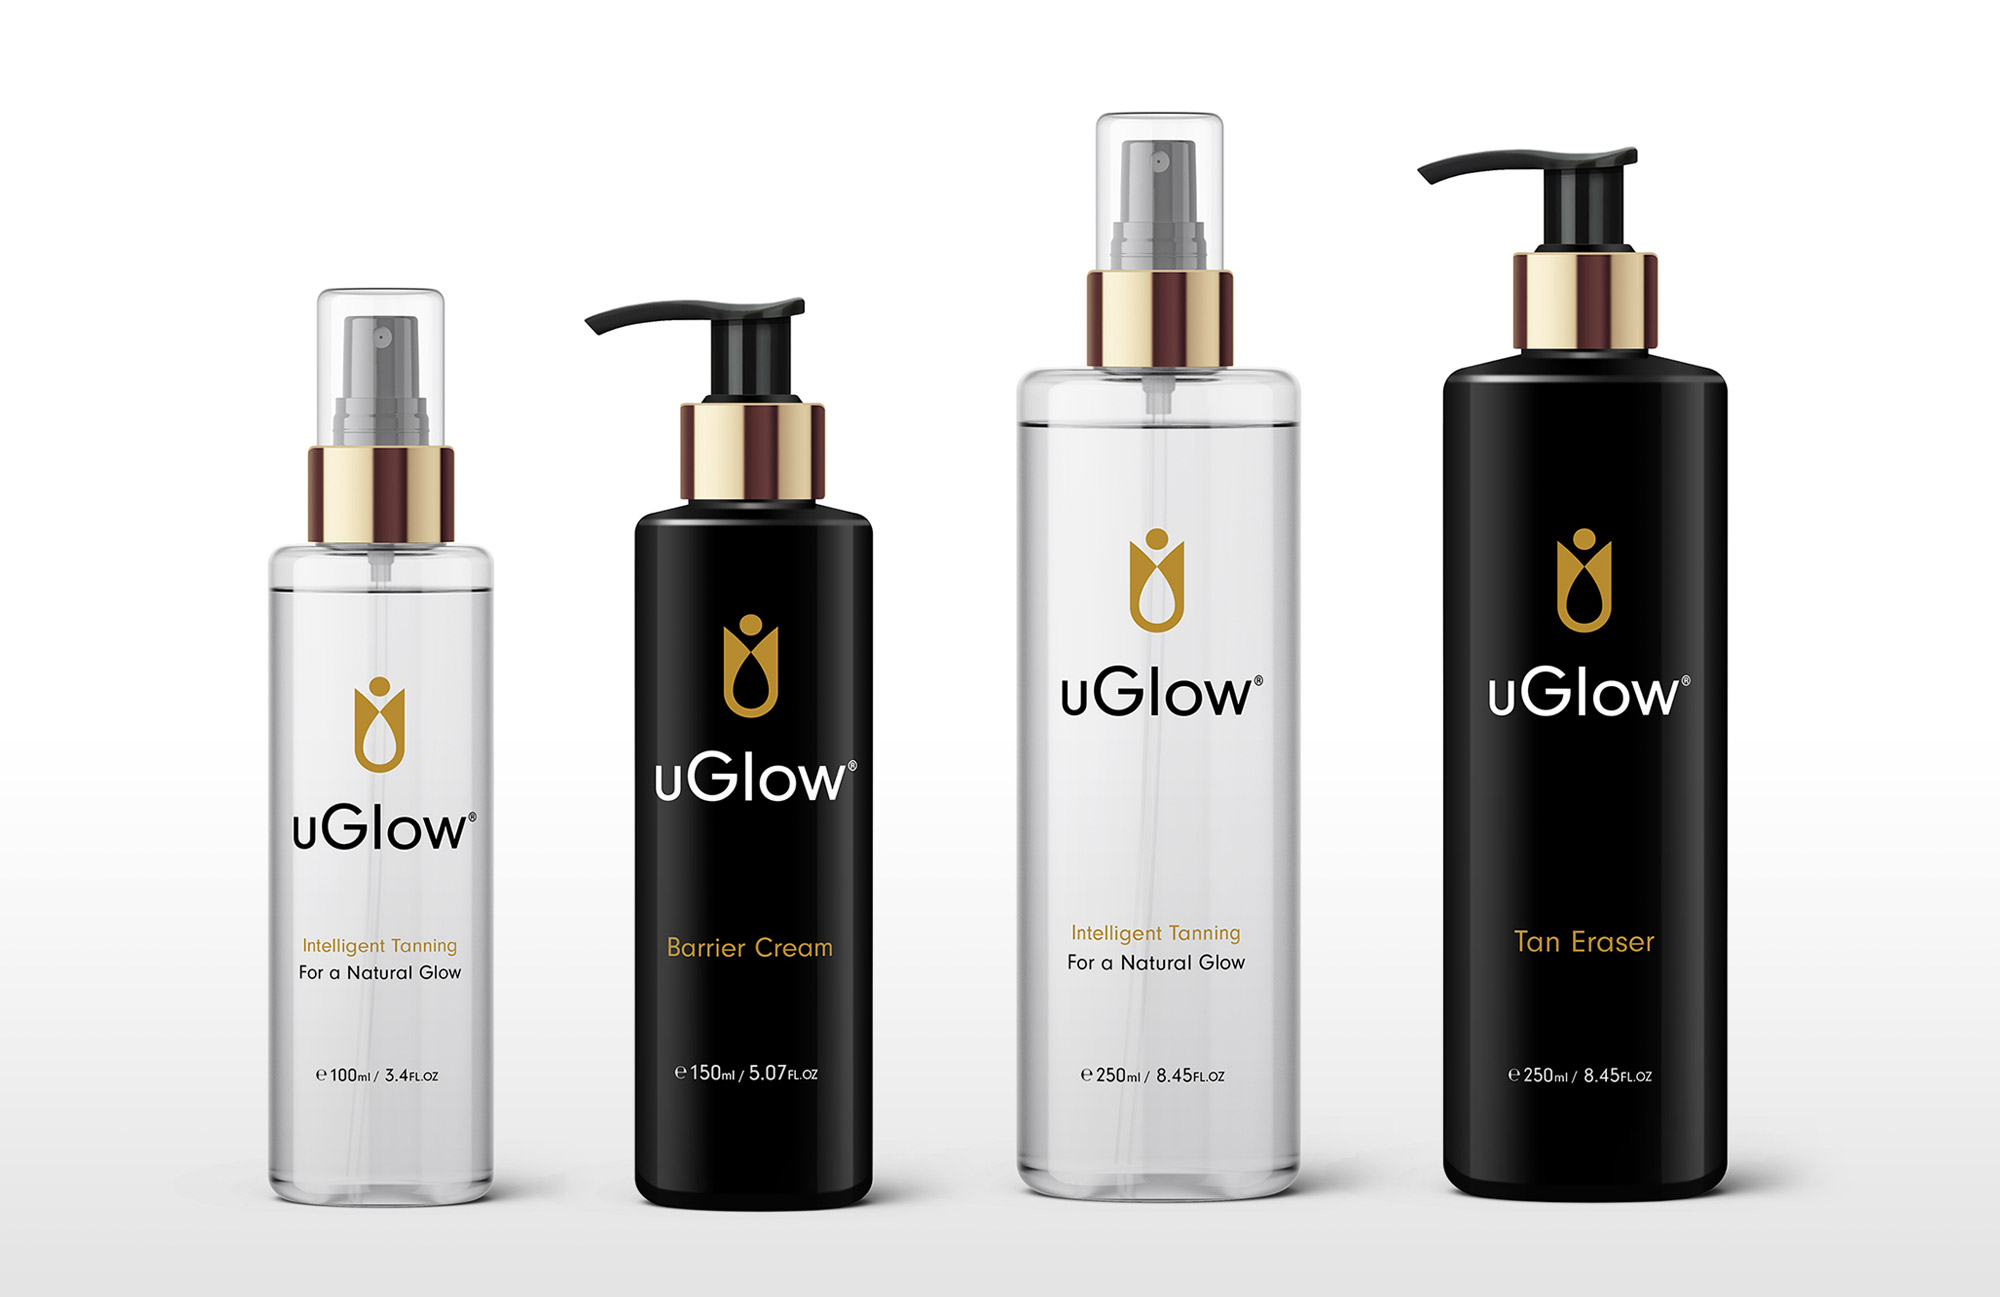 uGlow Logo & Packaging Design by Ian Paget